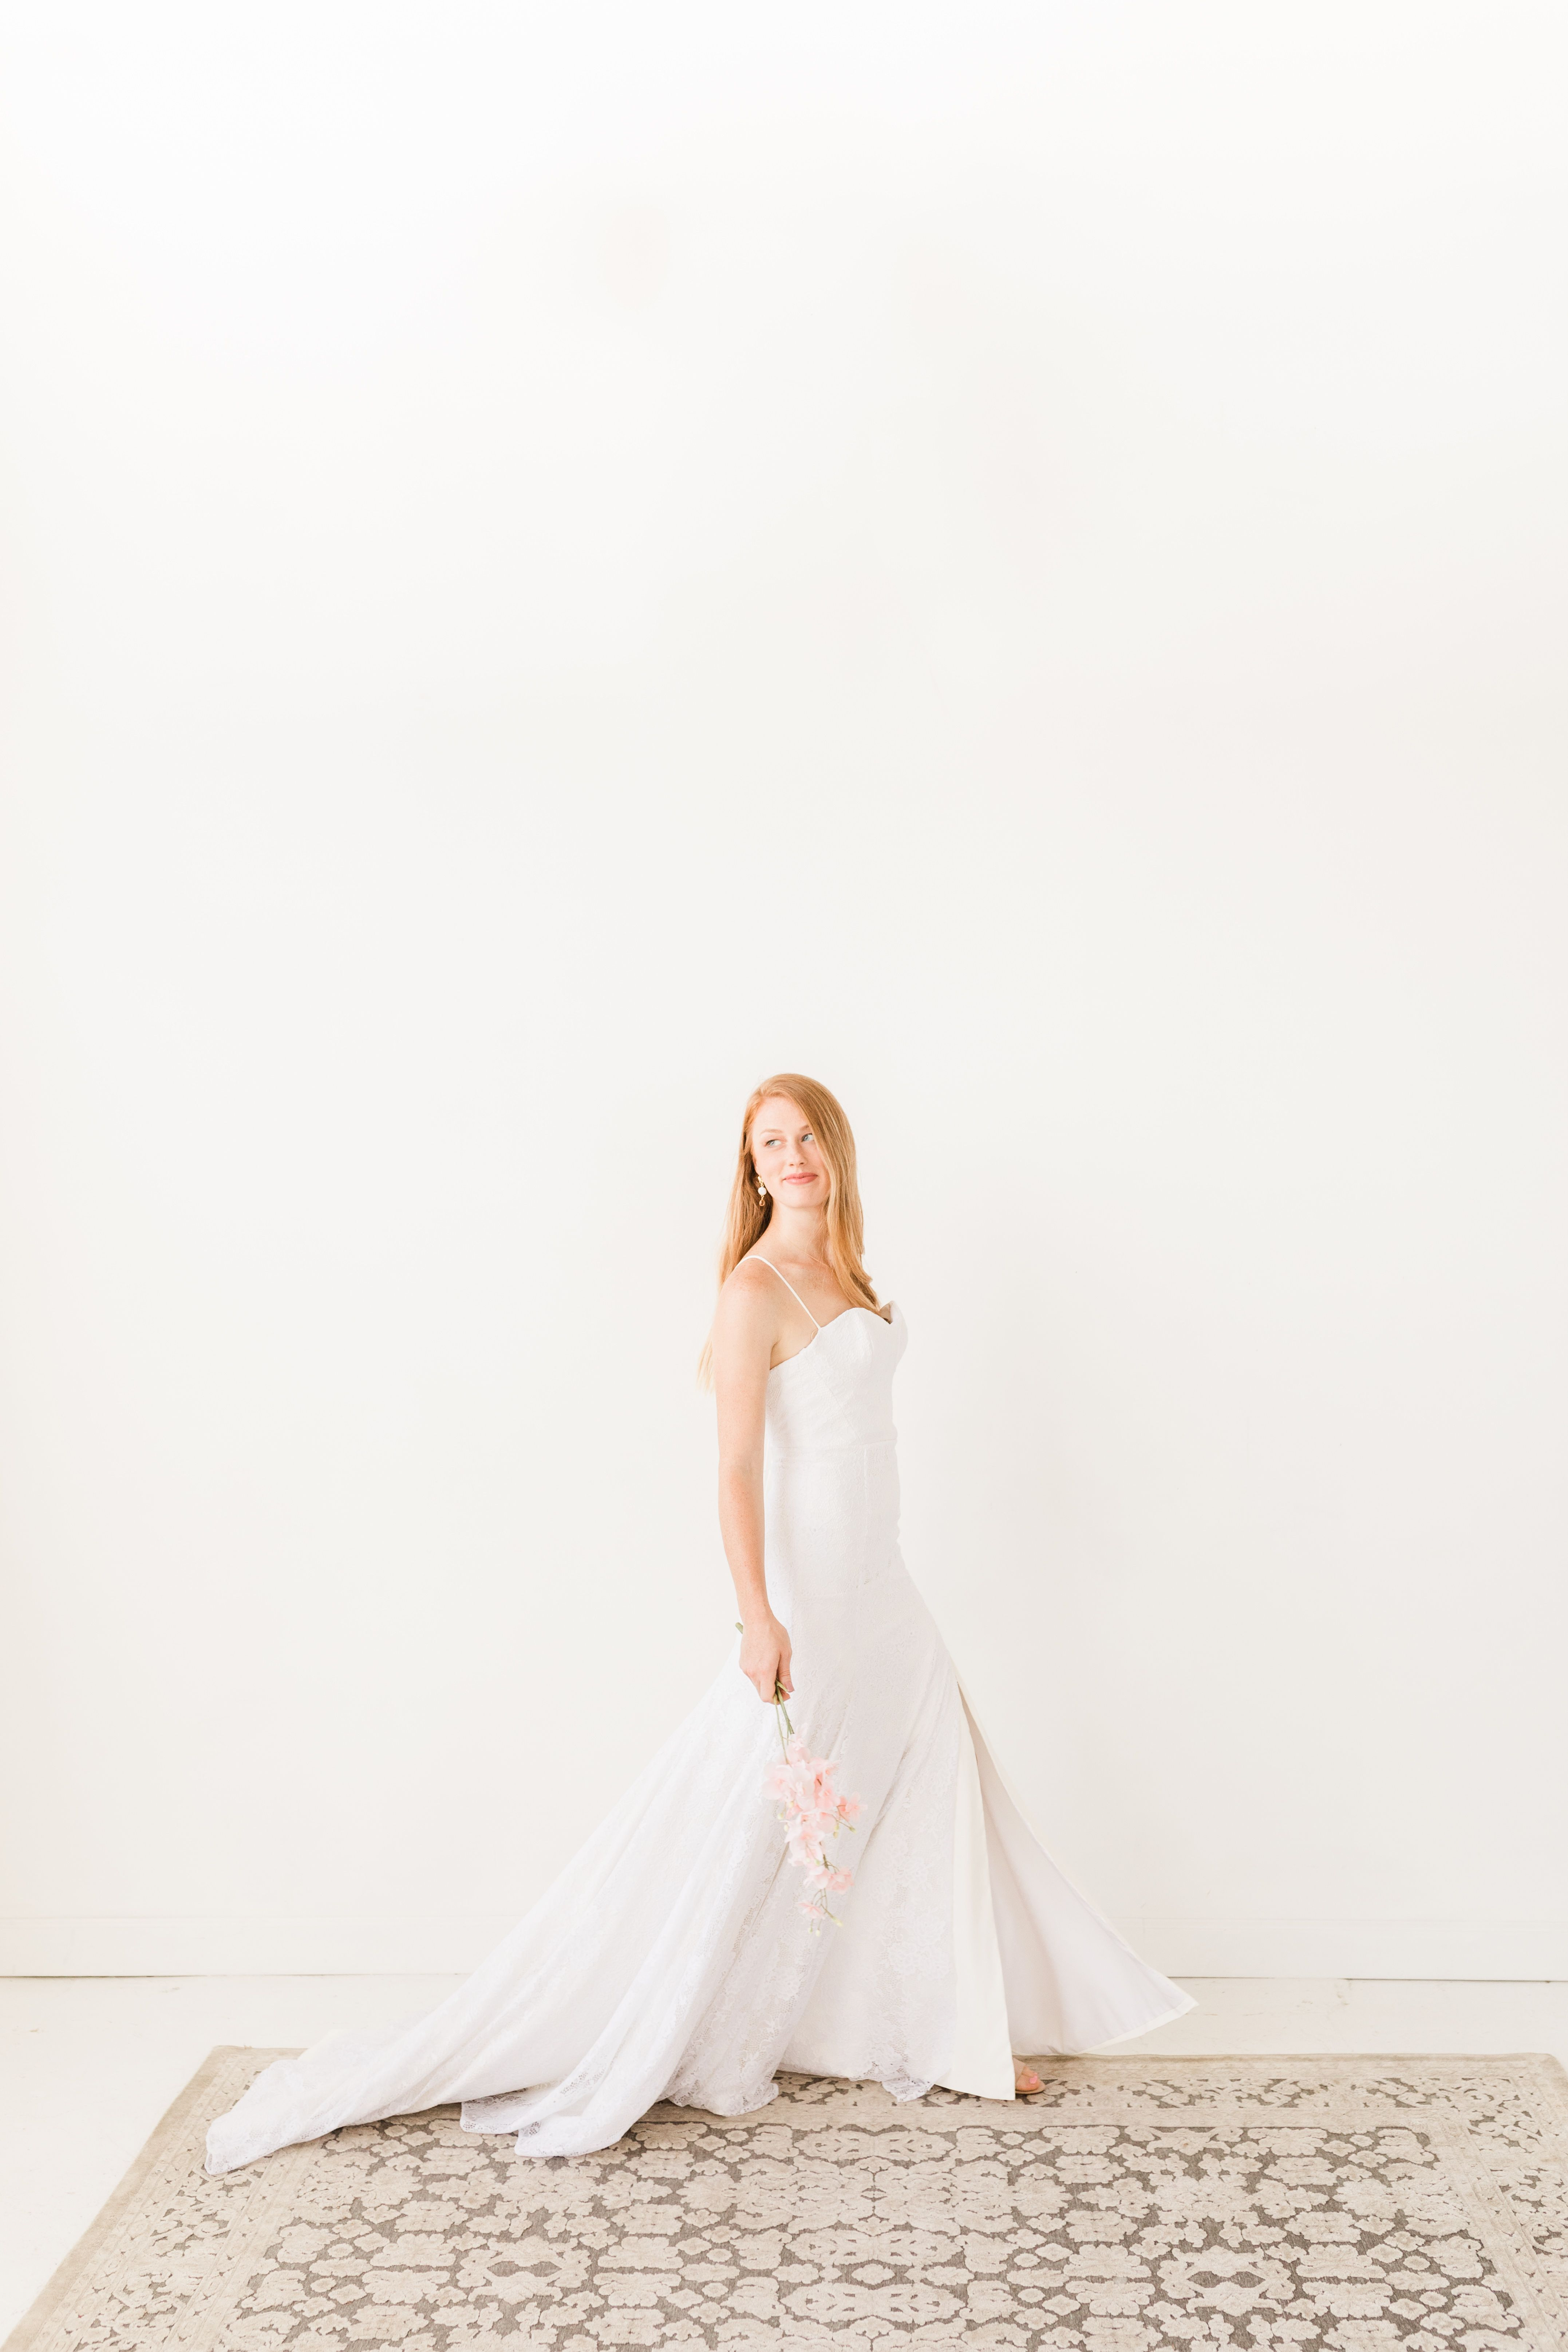 The Charlie Dress From Hyacinth Bridal S 2019 Collection Creative Director Stylist And Planner Perry Rose Media Photo Crepe Wedding Dress Wedding Dresses